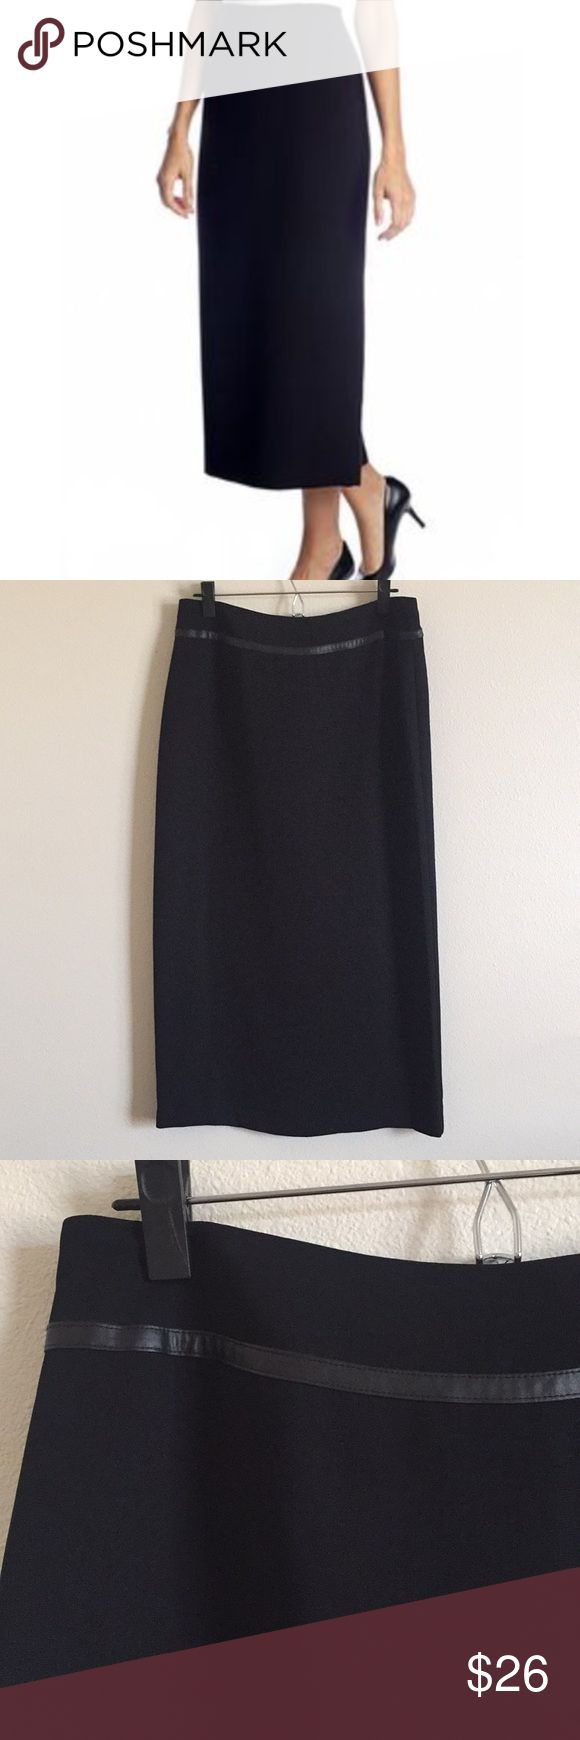 """Emma James Faux Leather Trim Long Pencil Skirt Like new condition. Super versatile. Sexy edge with faux leather trimming. Fully lined. Waist measures 15"""" across. Length is 34"""". Emma James Skirts Pencil"""